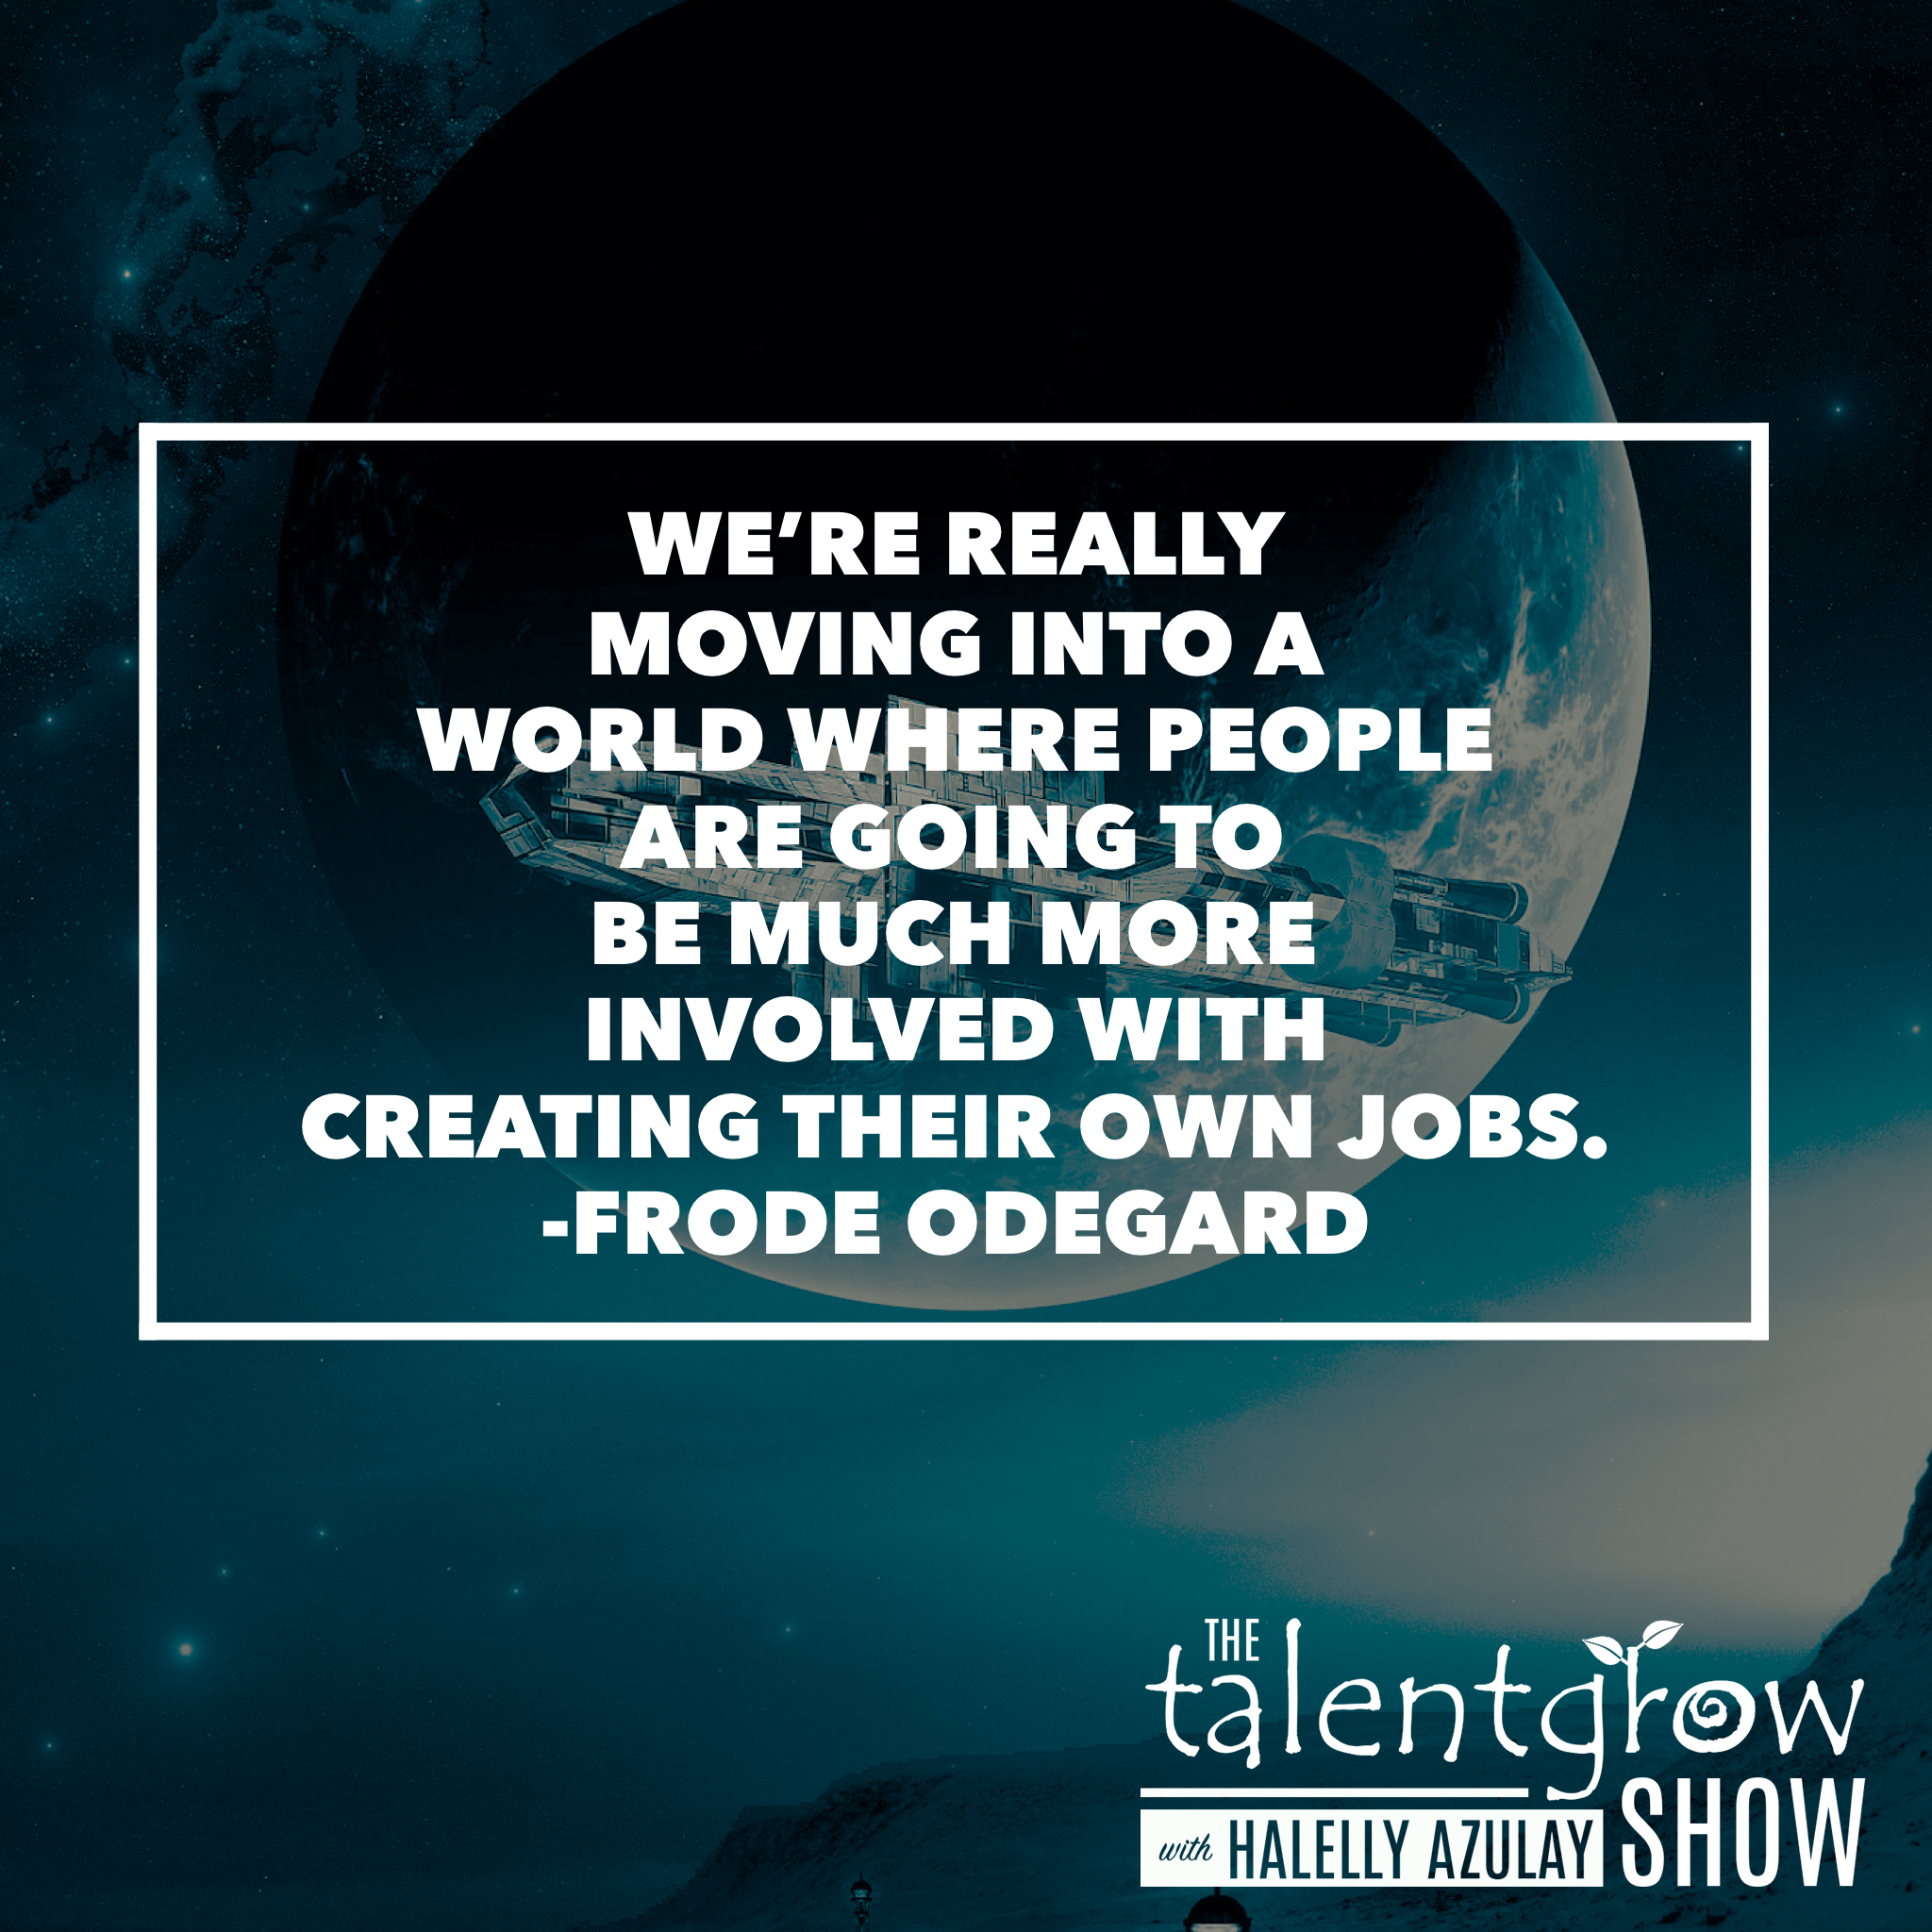 Cycle of disruption insights from Frode Odegard on episode 64 of the TalentGrow Show podcast with Halelly Azulay